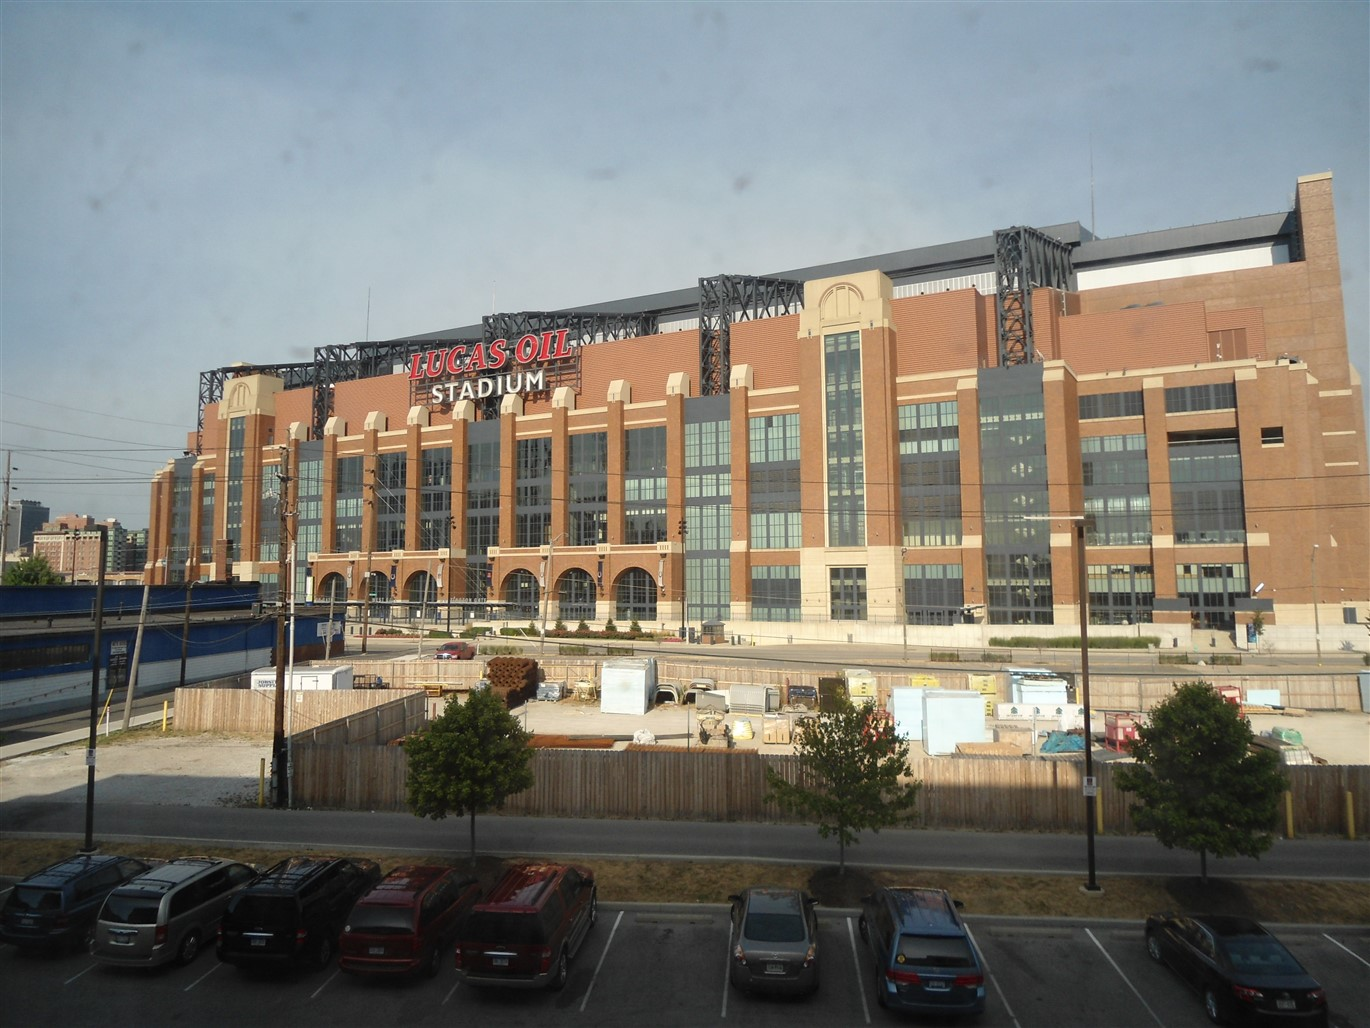 2012 06 29 Indianapolis 1.jpg